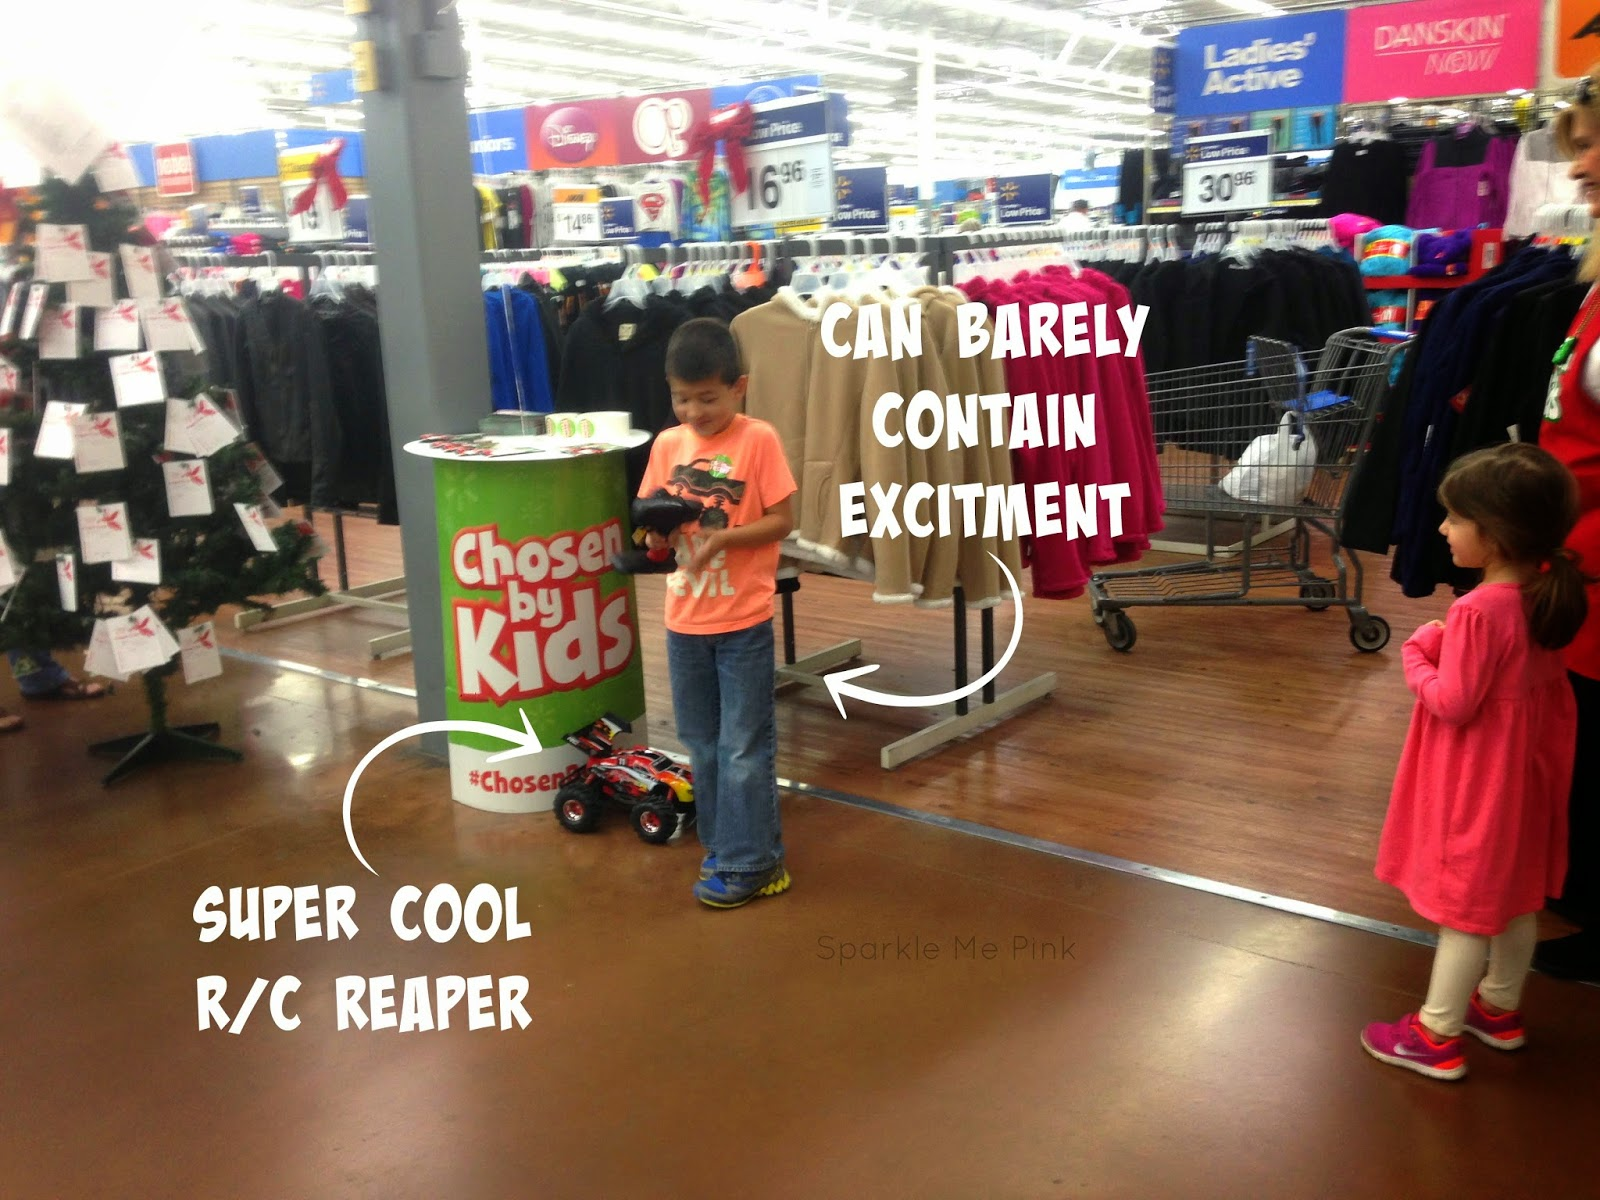 Walmart Toys Rc Cars Html Drone Camera New Bright Car Wiring Diagram With Pro Reaper Review Hot On Toy